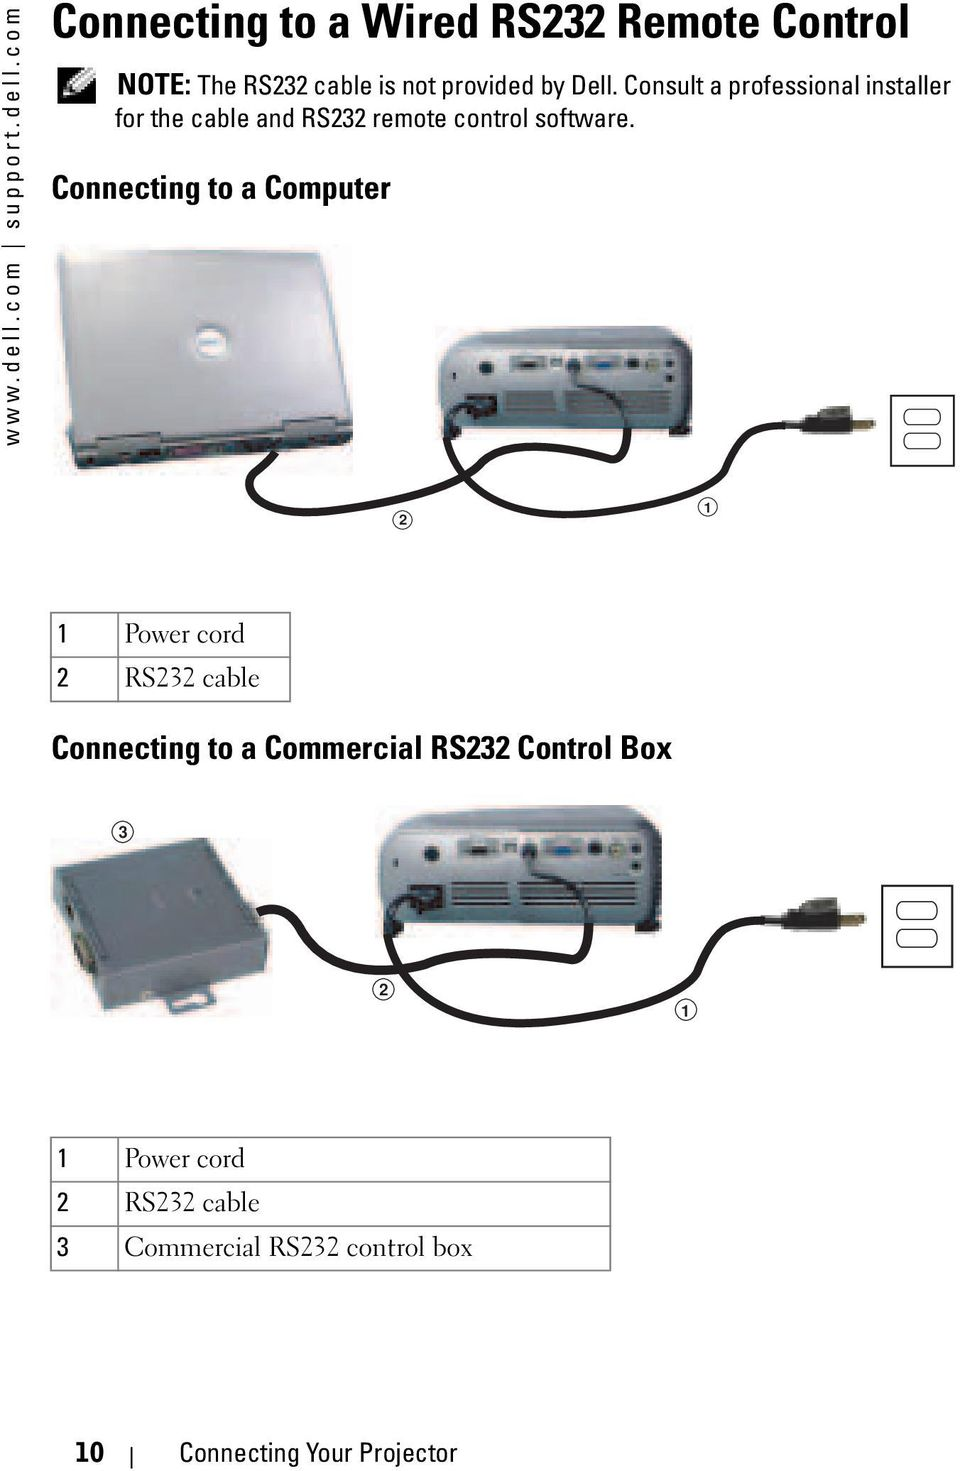 com Connecting to a Wired RS232 Remote Control NOTE: The RS232 cable is not provided by Dell.